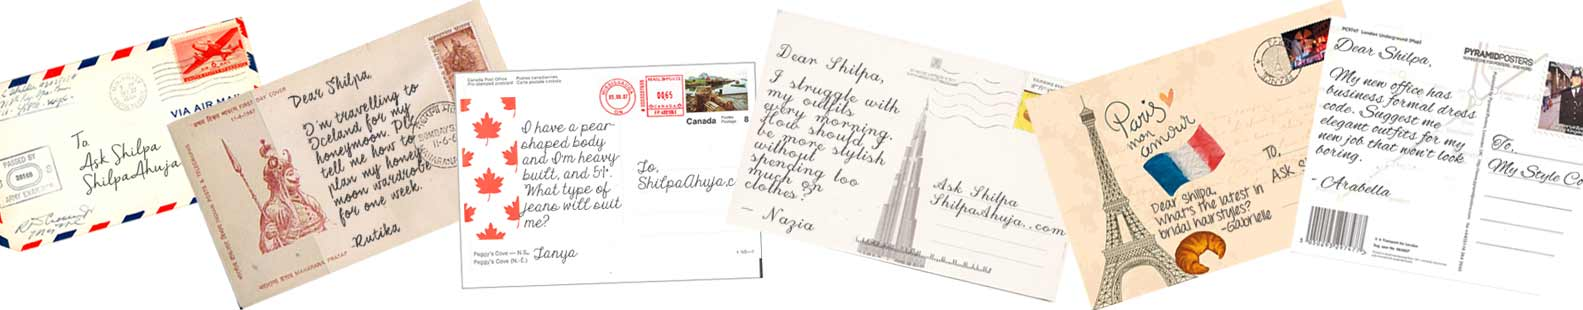 ask-shilpa-fashion-blogger-questions-answers-style-postcards-letters-